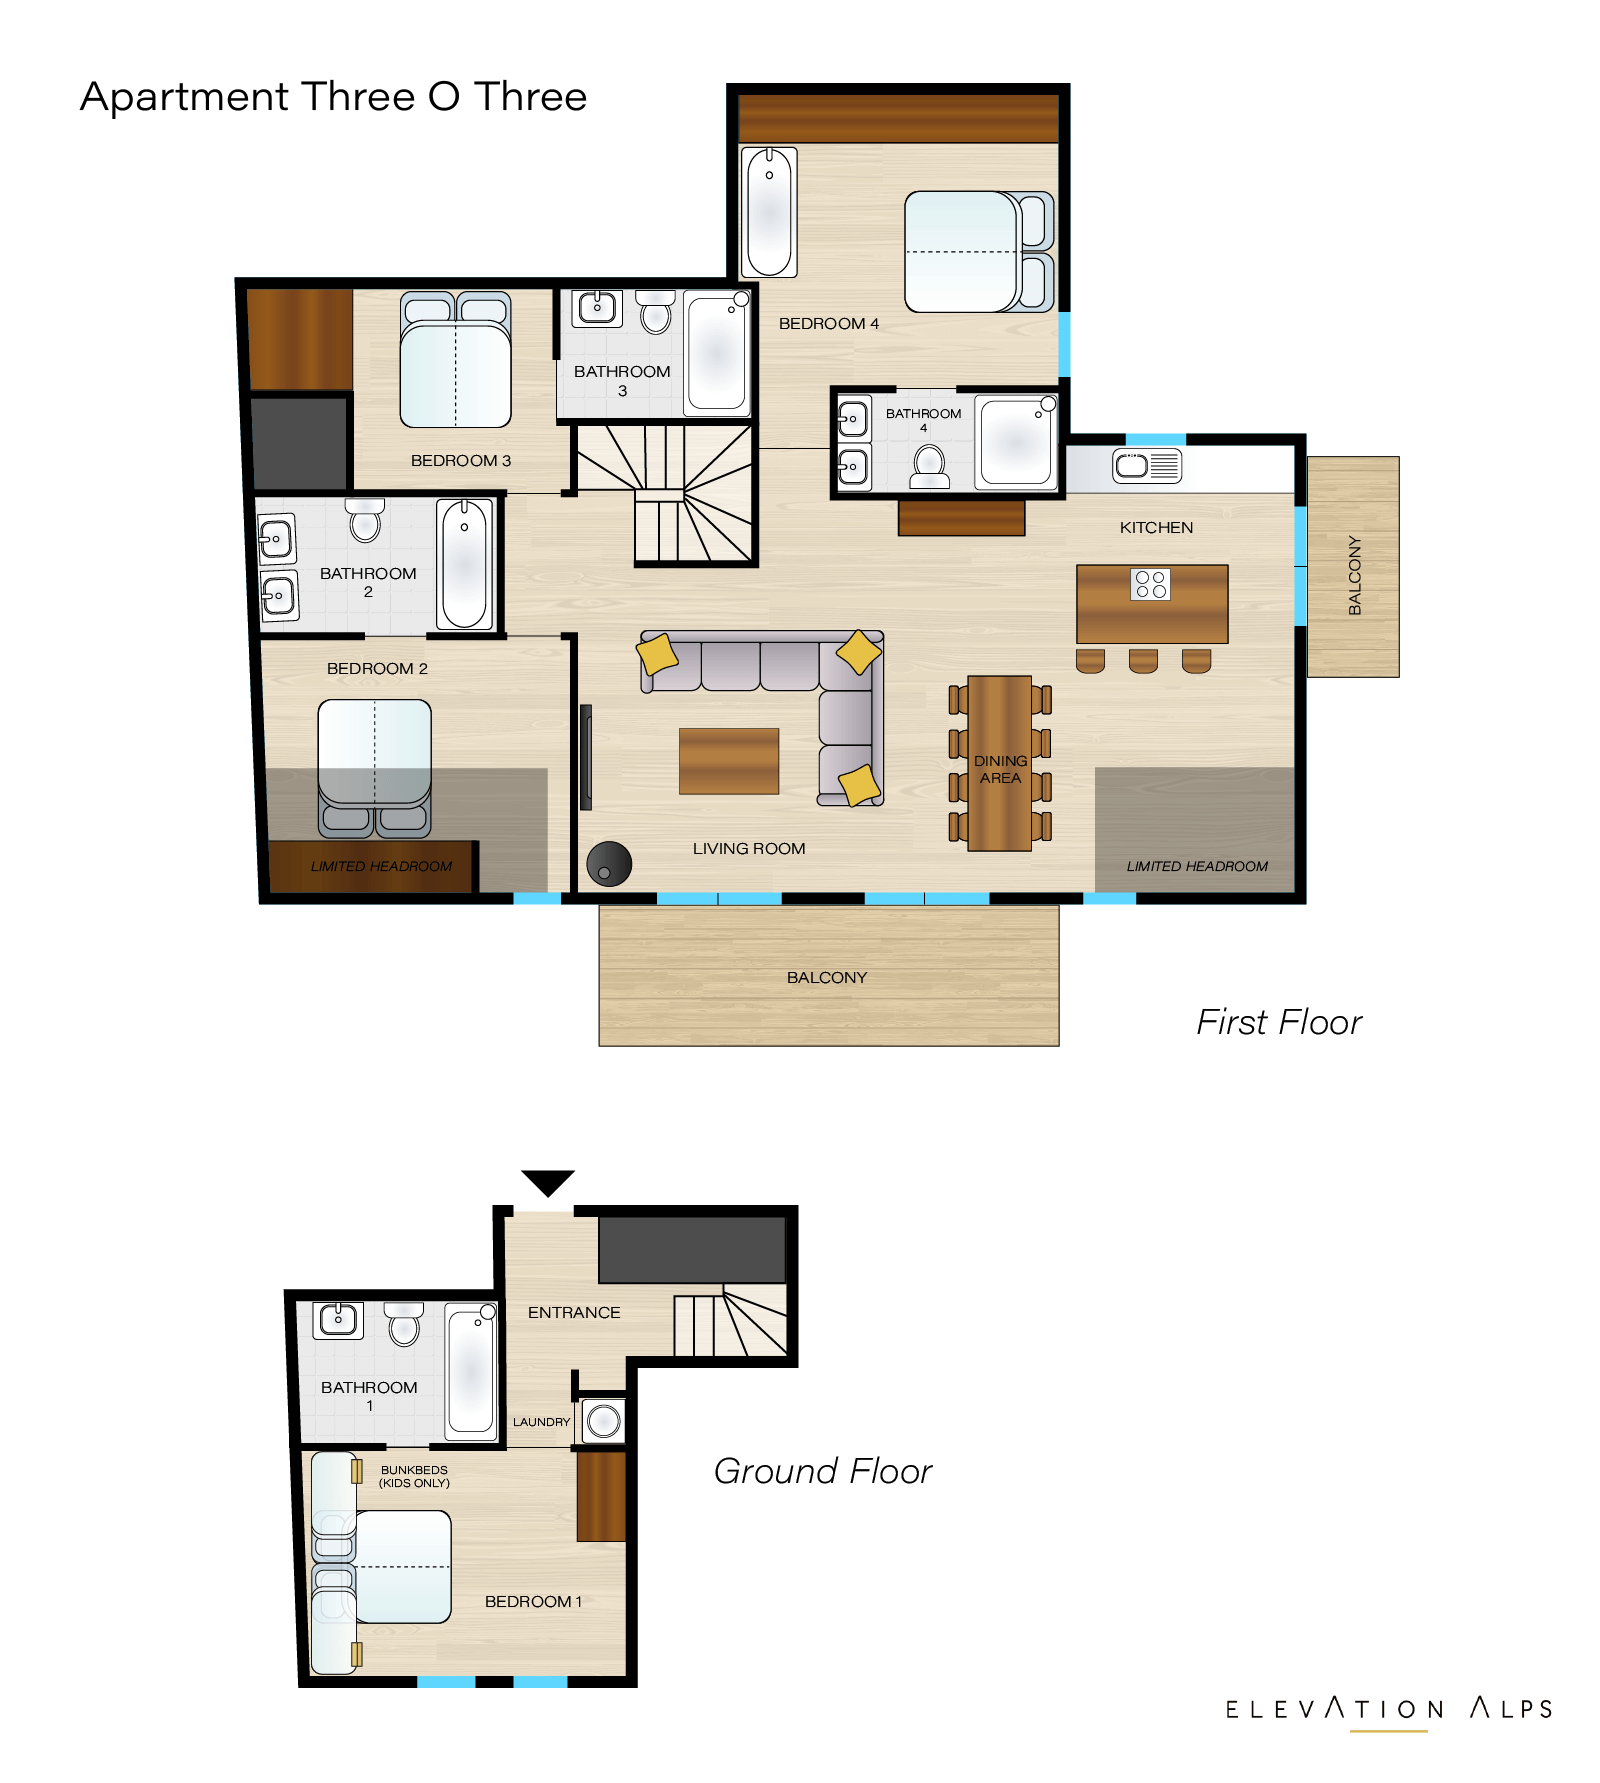 Three 0 Three Penthouse Floor Plan Elevation Alps Elevation Alps